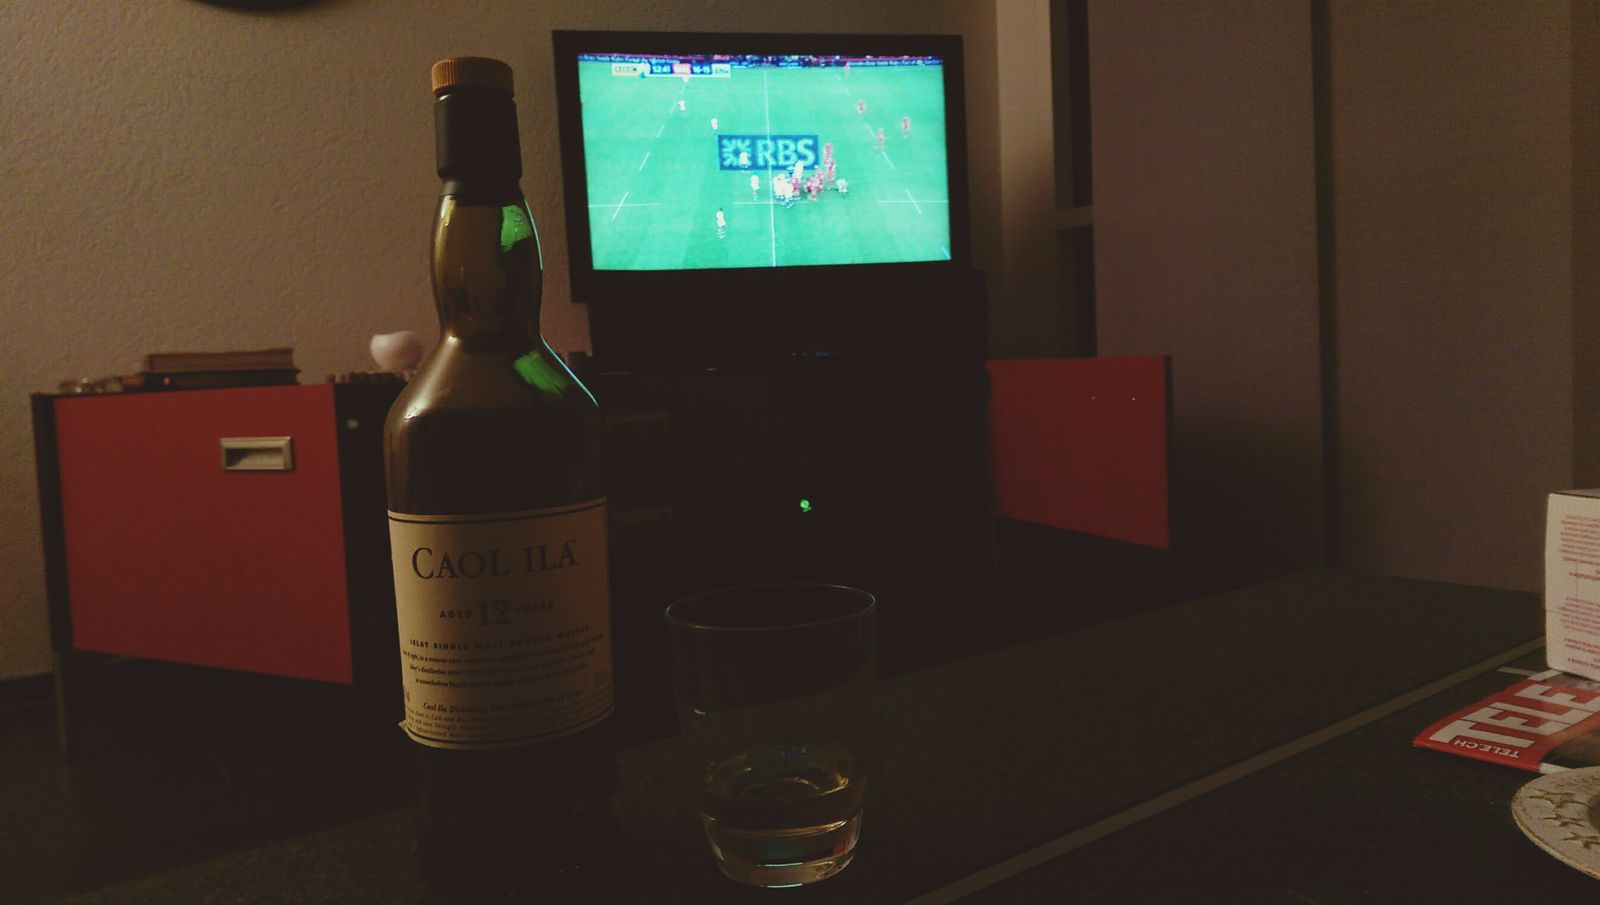 Whisky and Rugby 6 Nations, what a great match